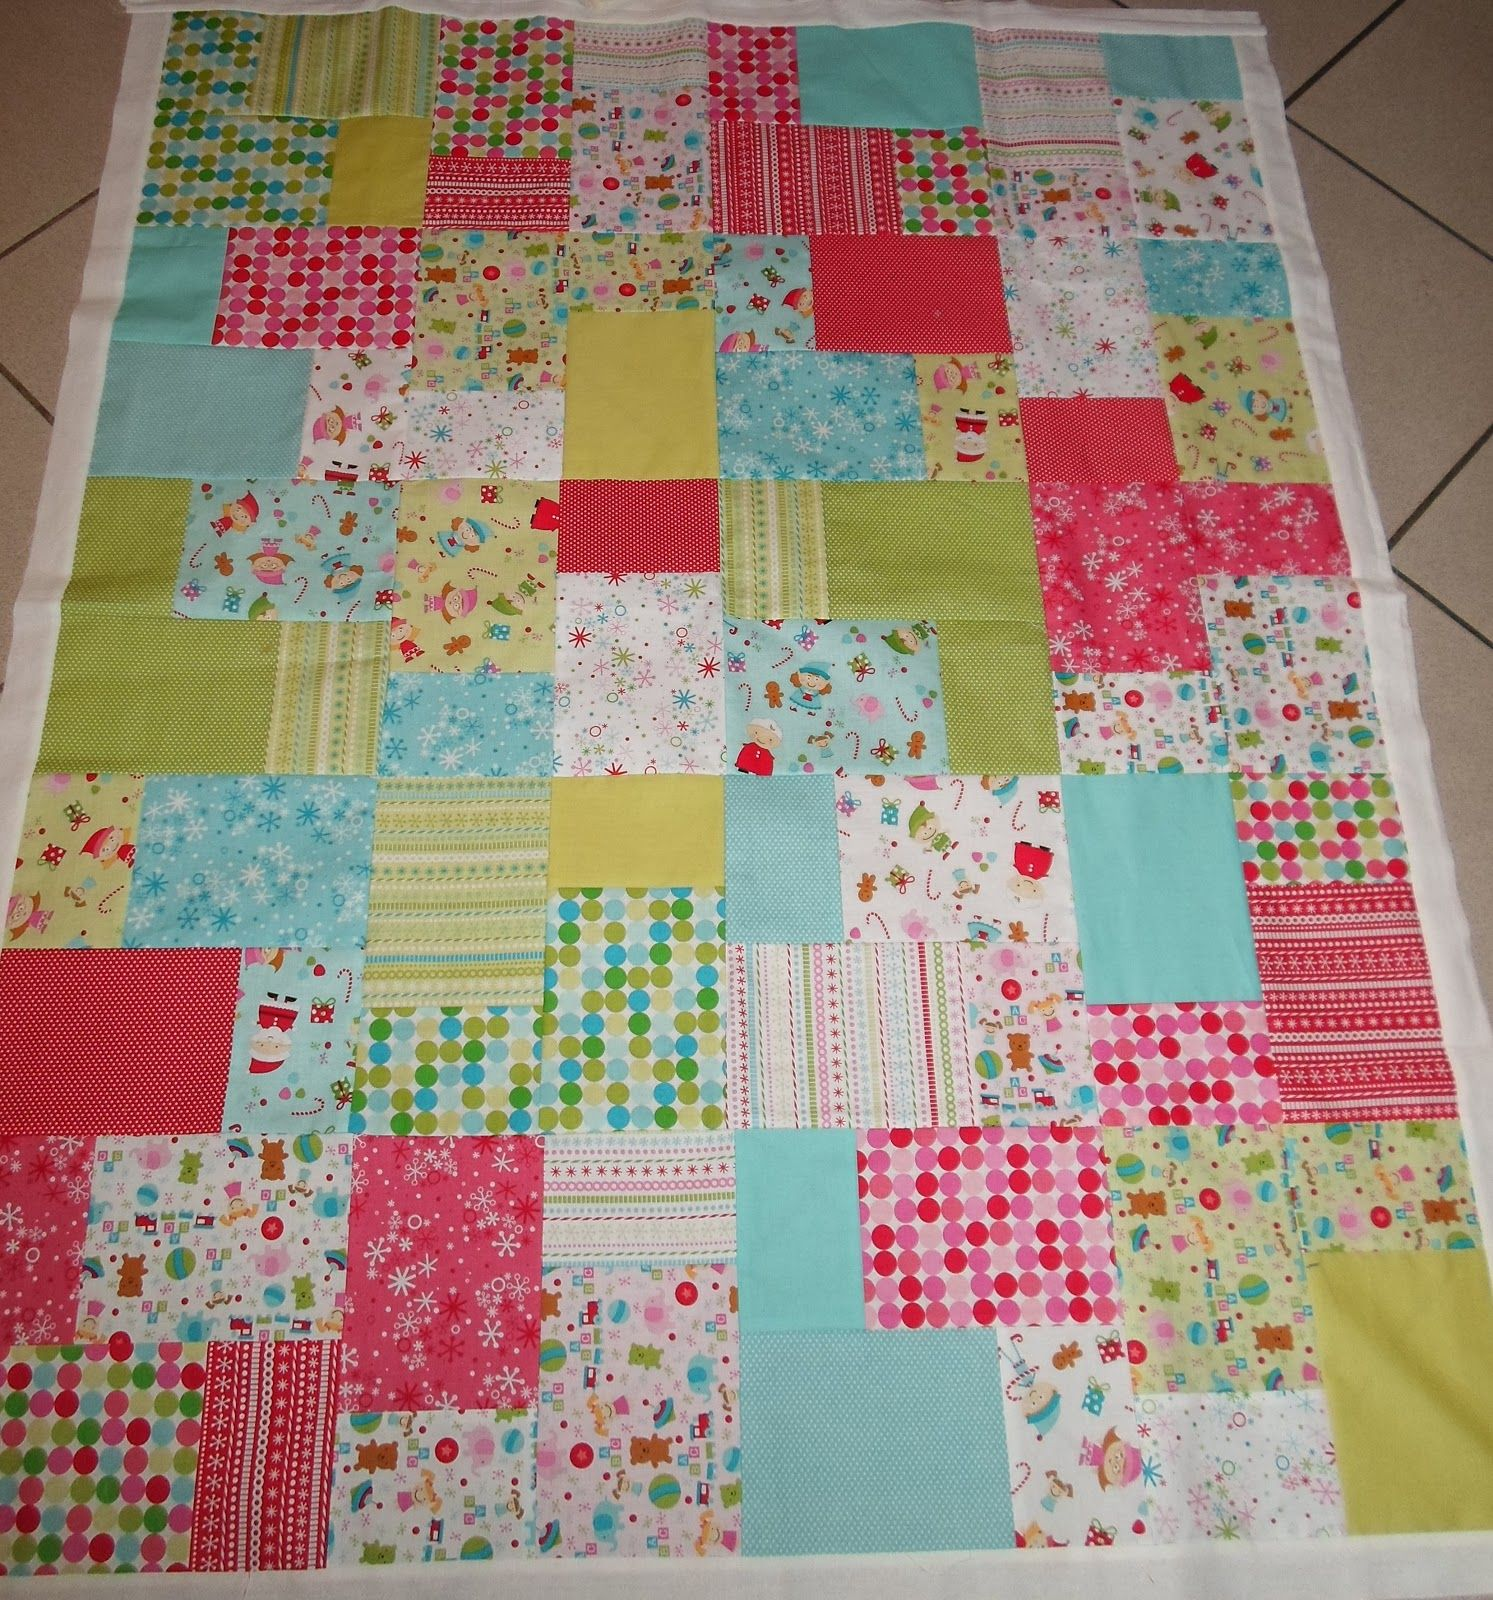 Double Slice Layer Cake Quilt | 06. Quilting: Layer Cakes ... : double layer cake quilt - Adamdwight.com